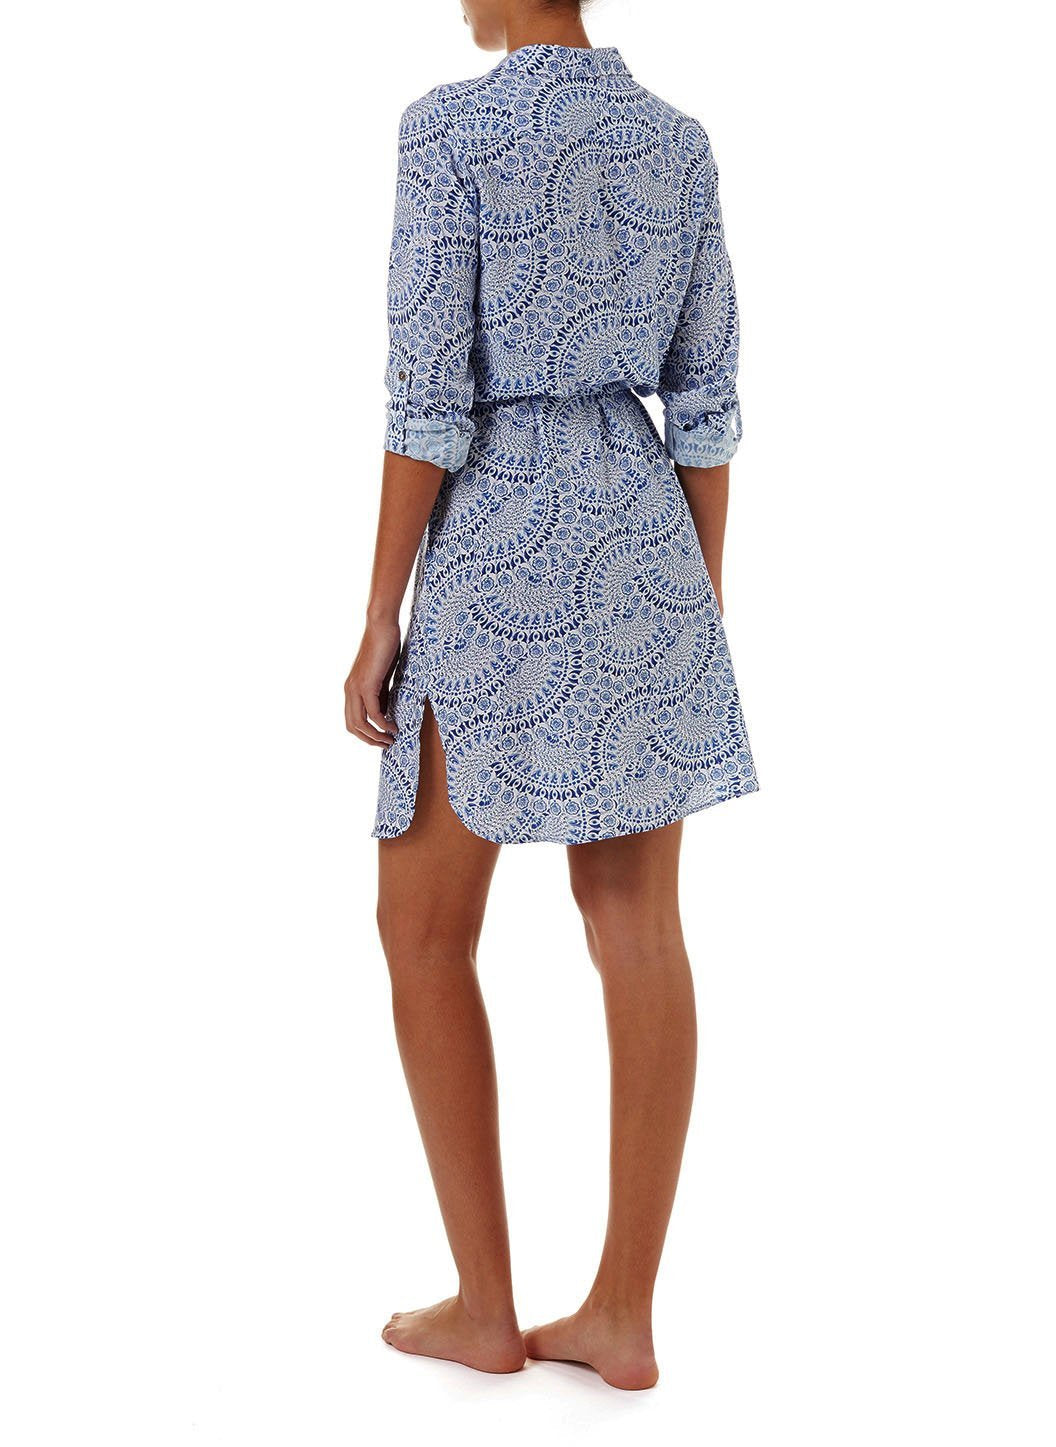 lois capri button down belted shirt dress 2019 B